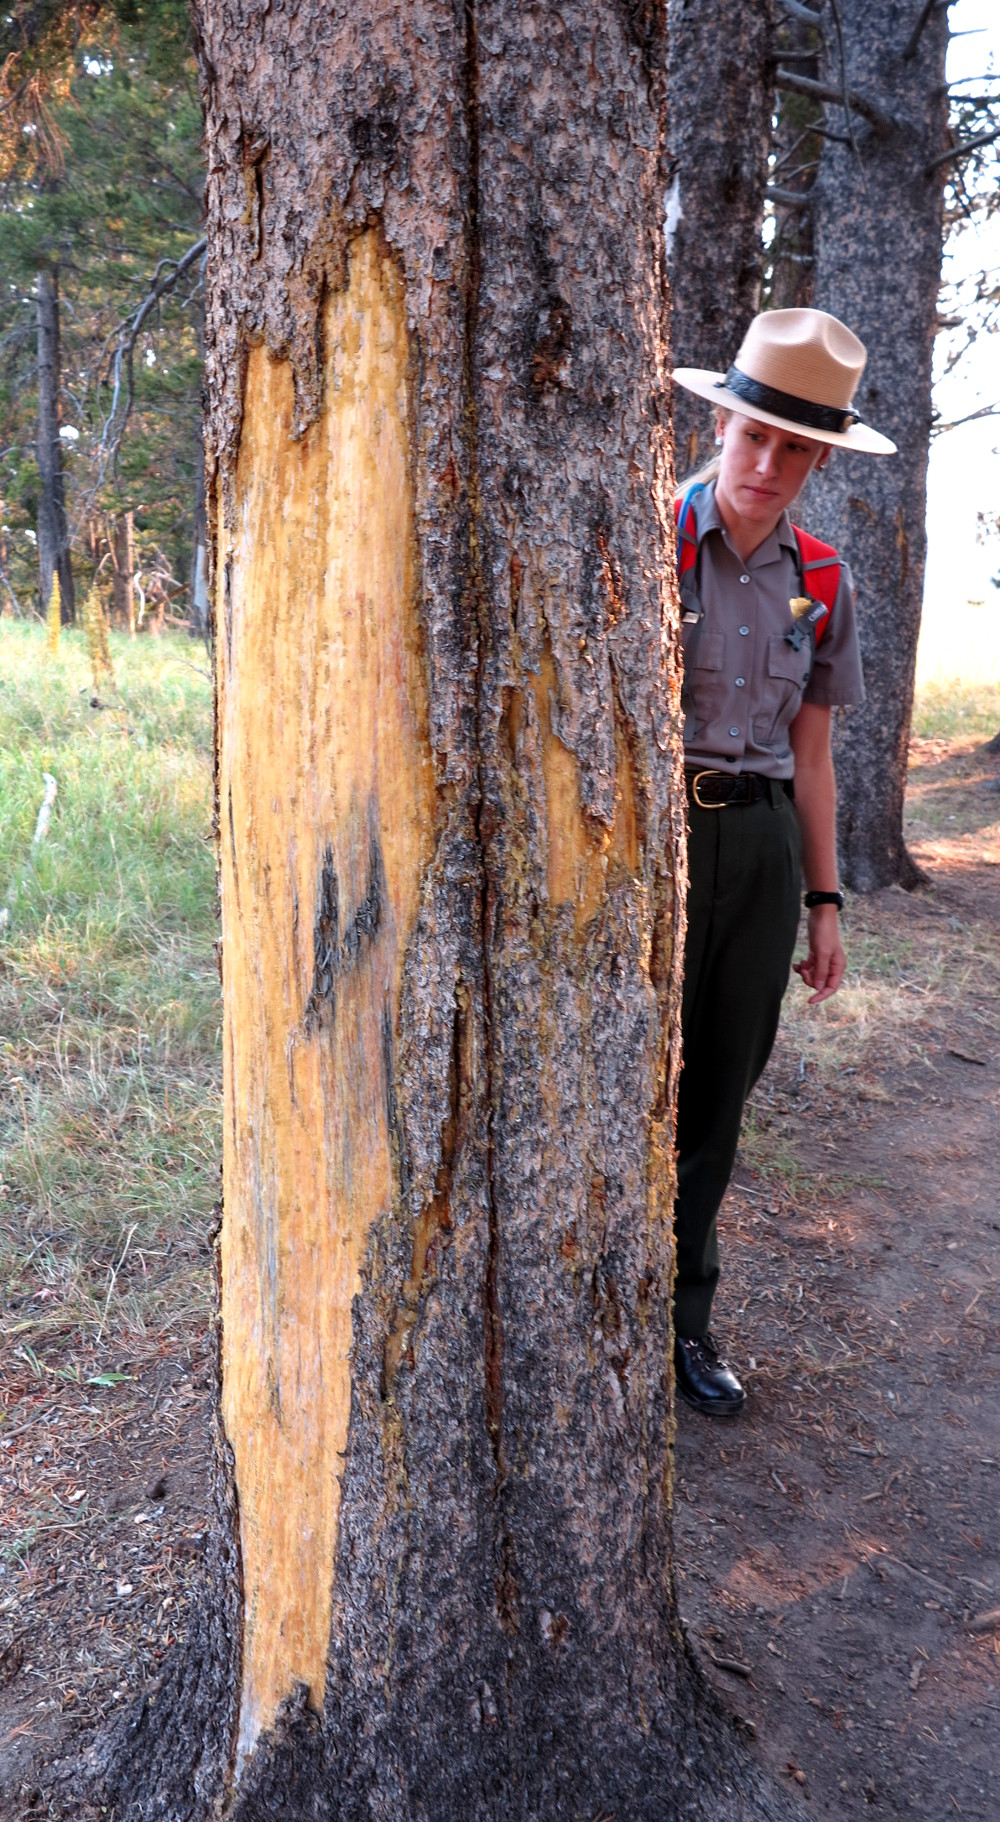 We went on a walk with a ranger and she showed us this bison rub - they use trees to scratch themselves with!